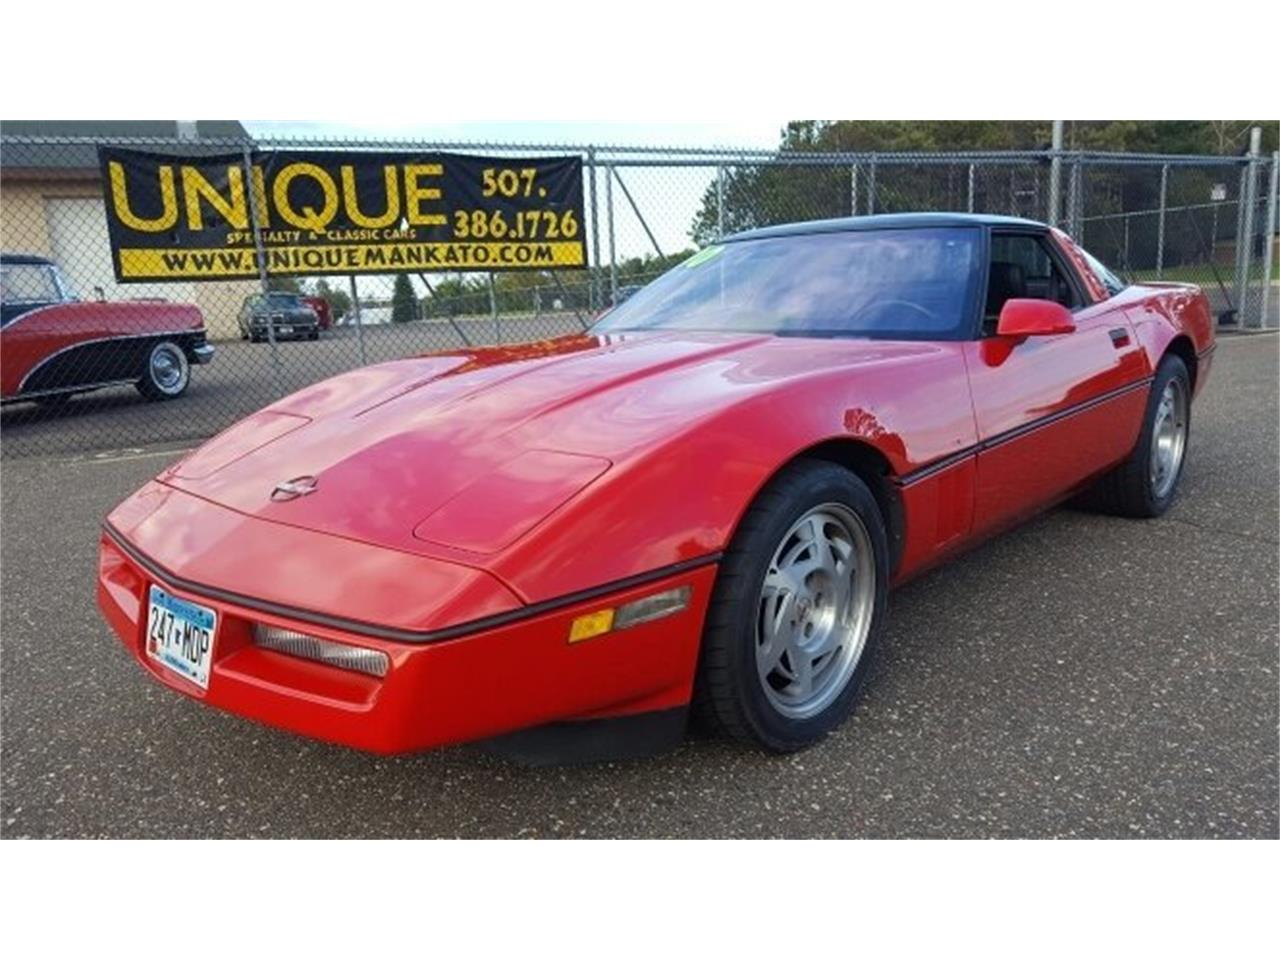 1990 Chevrolet Corvette Zr1 For Sale 1990 Chevrolet Corvette Zr1 In Mankato Minnesota